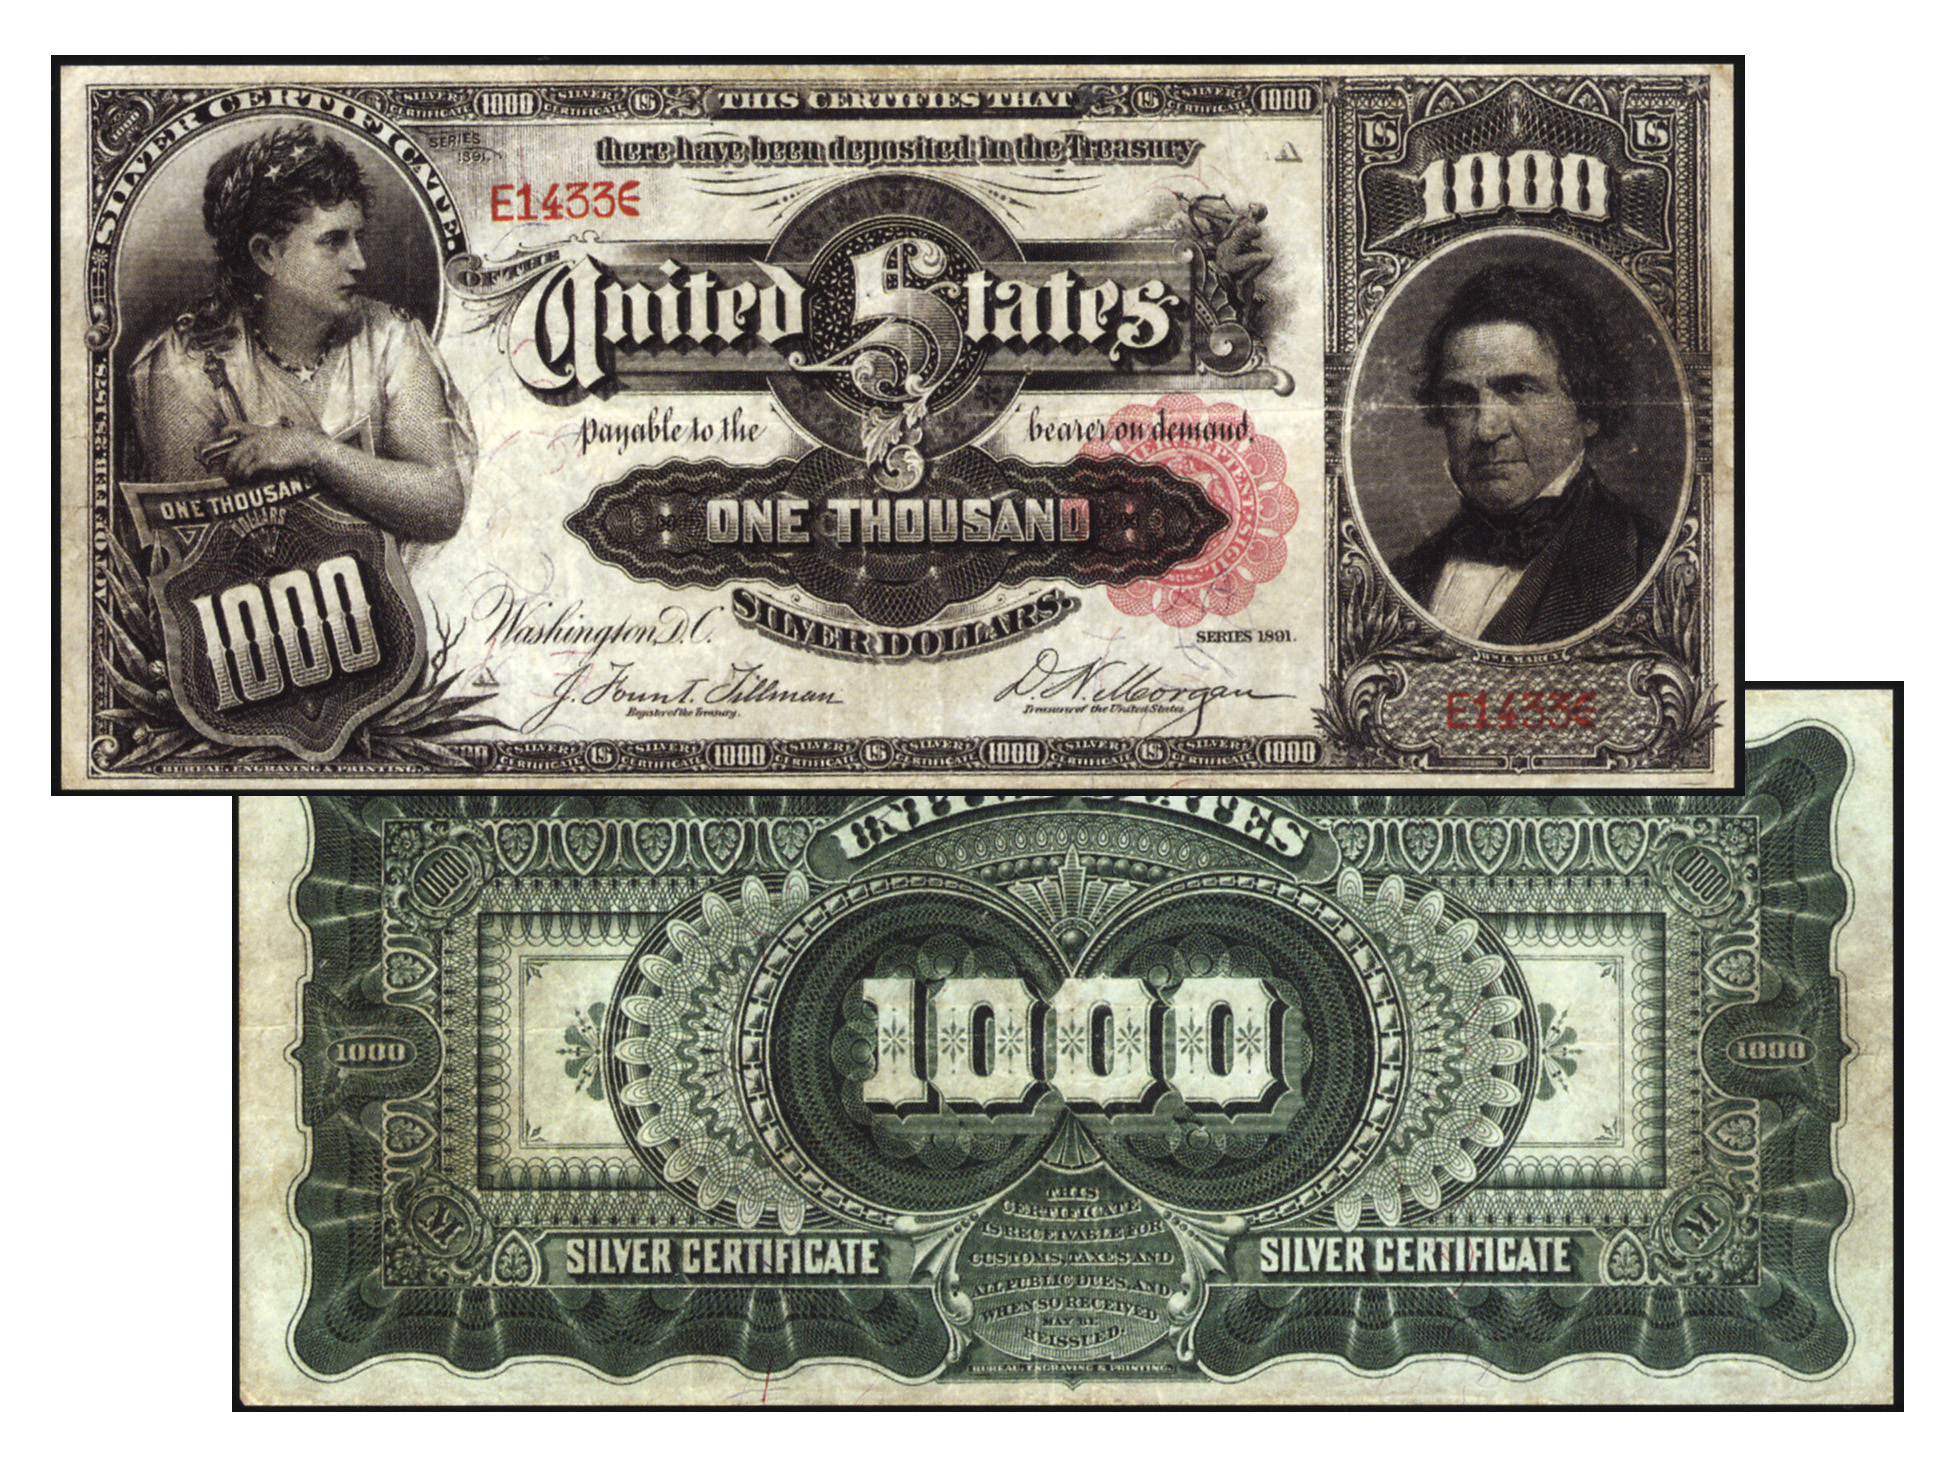 1891 1000 Silver Certificate Coin Collectors Blog